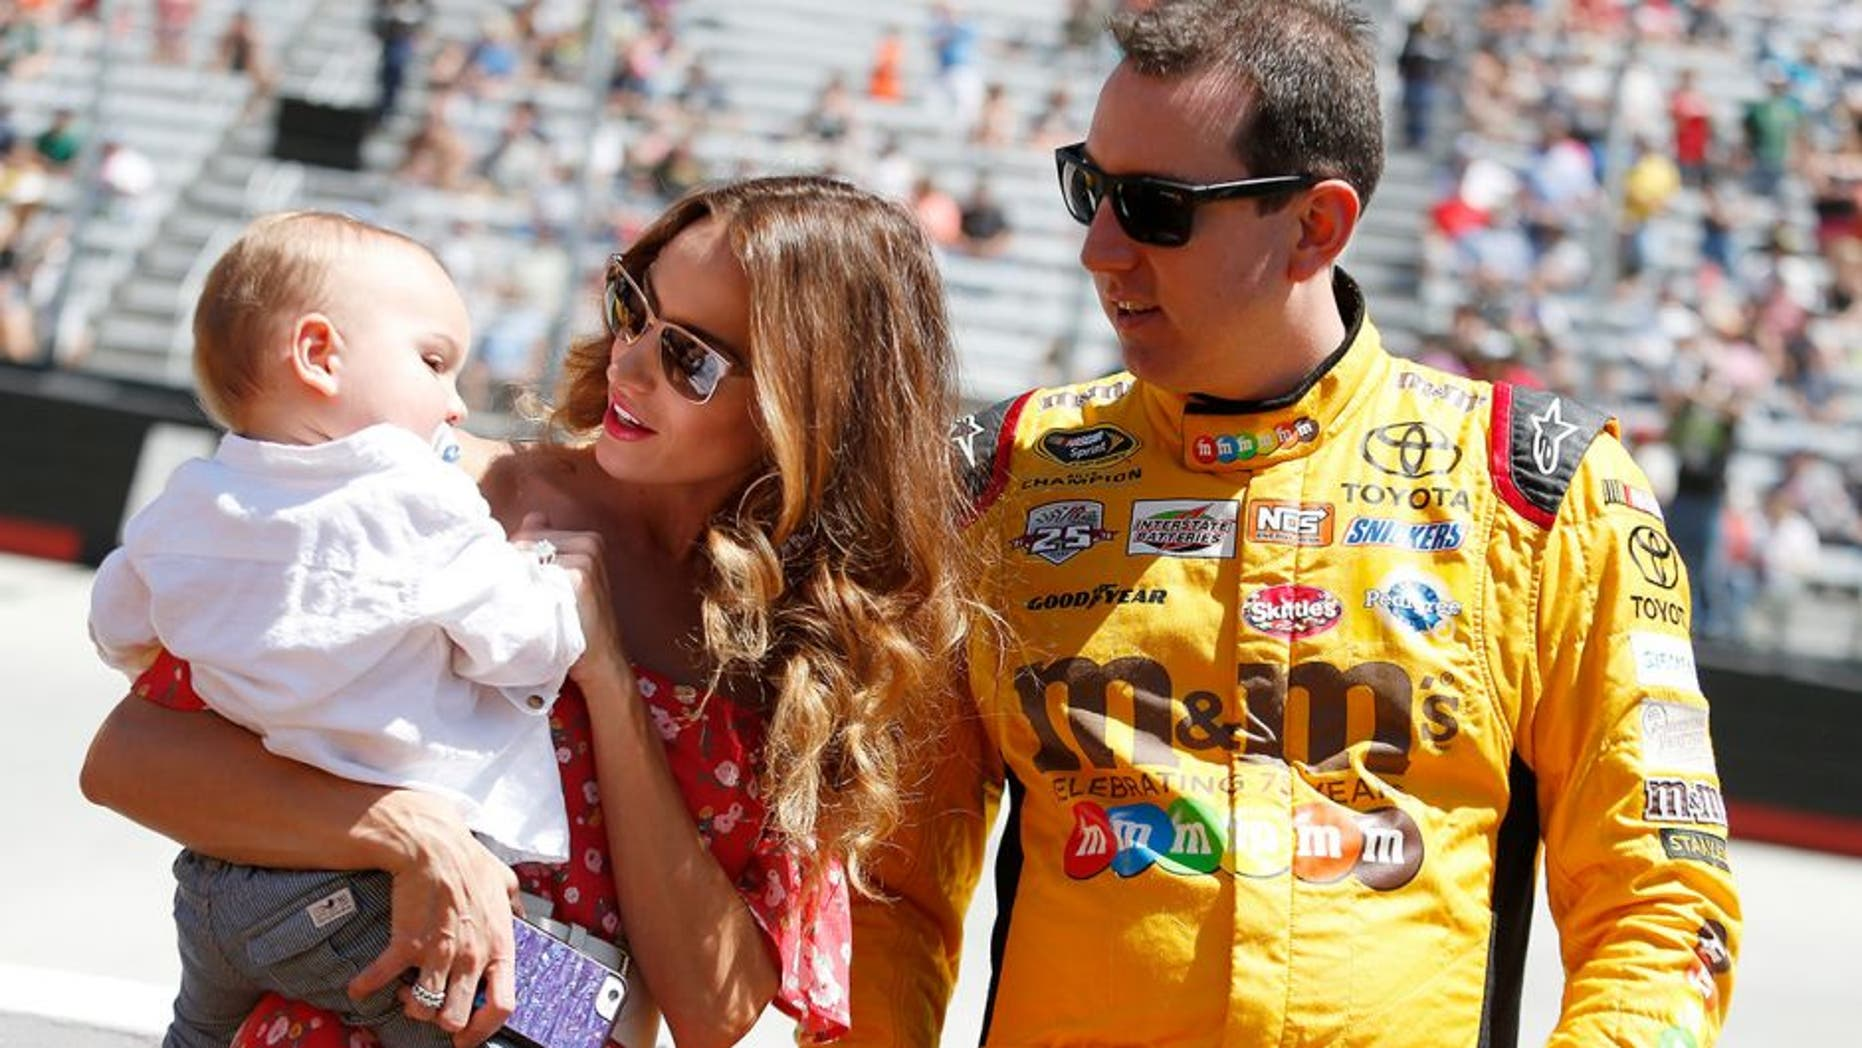 BRISTOL, TN - APRIL 17: Kyle Busch, driver of the #18 M&M's Toyota, stands on the grid with wife Samantha Busch and son Brexton prior to the NASCAR Sprint Cup Series Food City 500 at Bristol Motor Speedway on April 17, 2016 in Bristol, Tennessee. (Photo by Matt Hazlett/Getty Images)